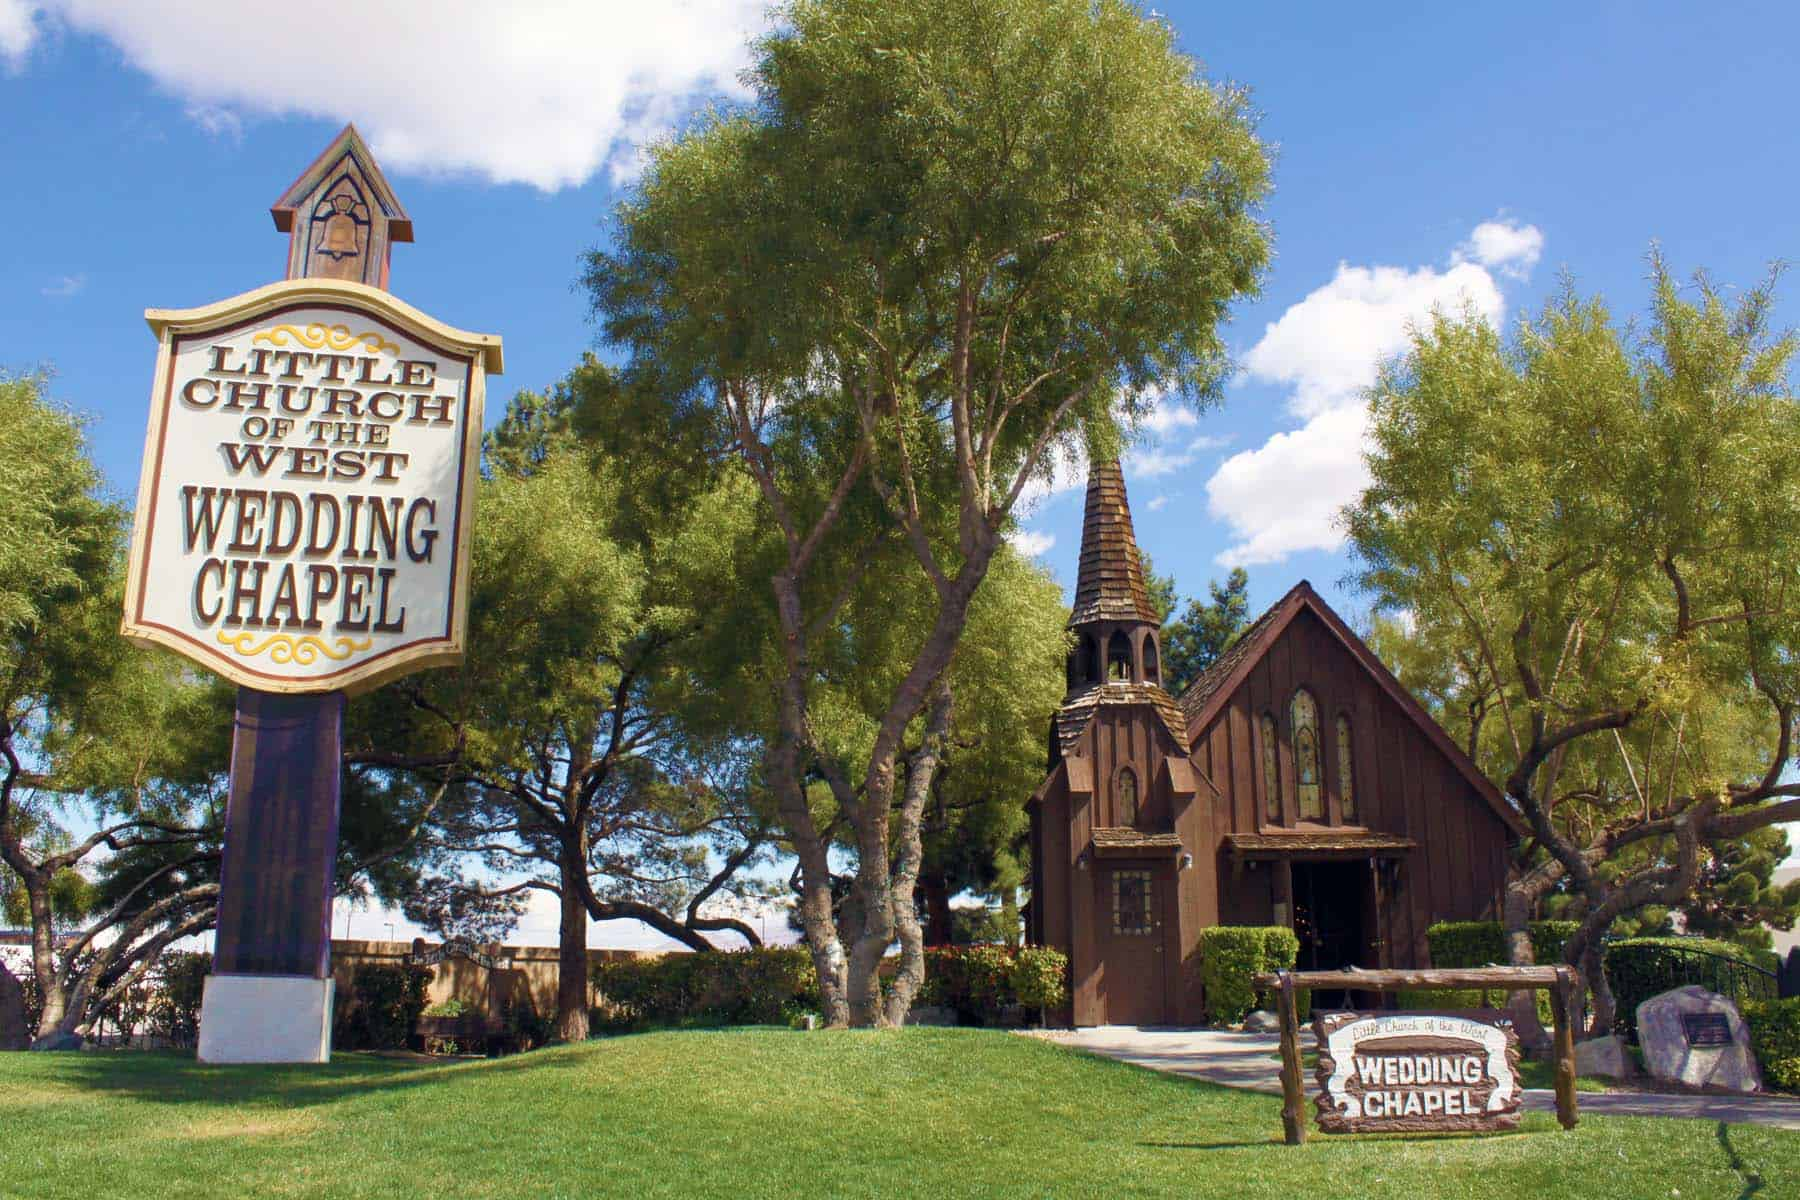 Las Vegas Wedding Chapels Little Church Of The West